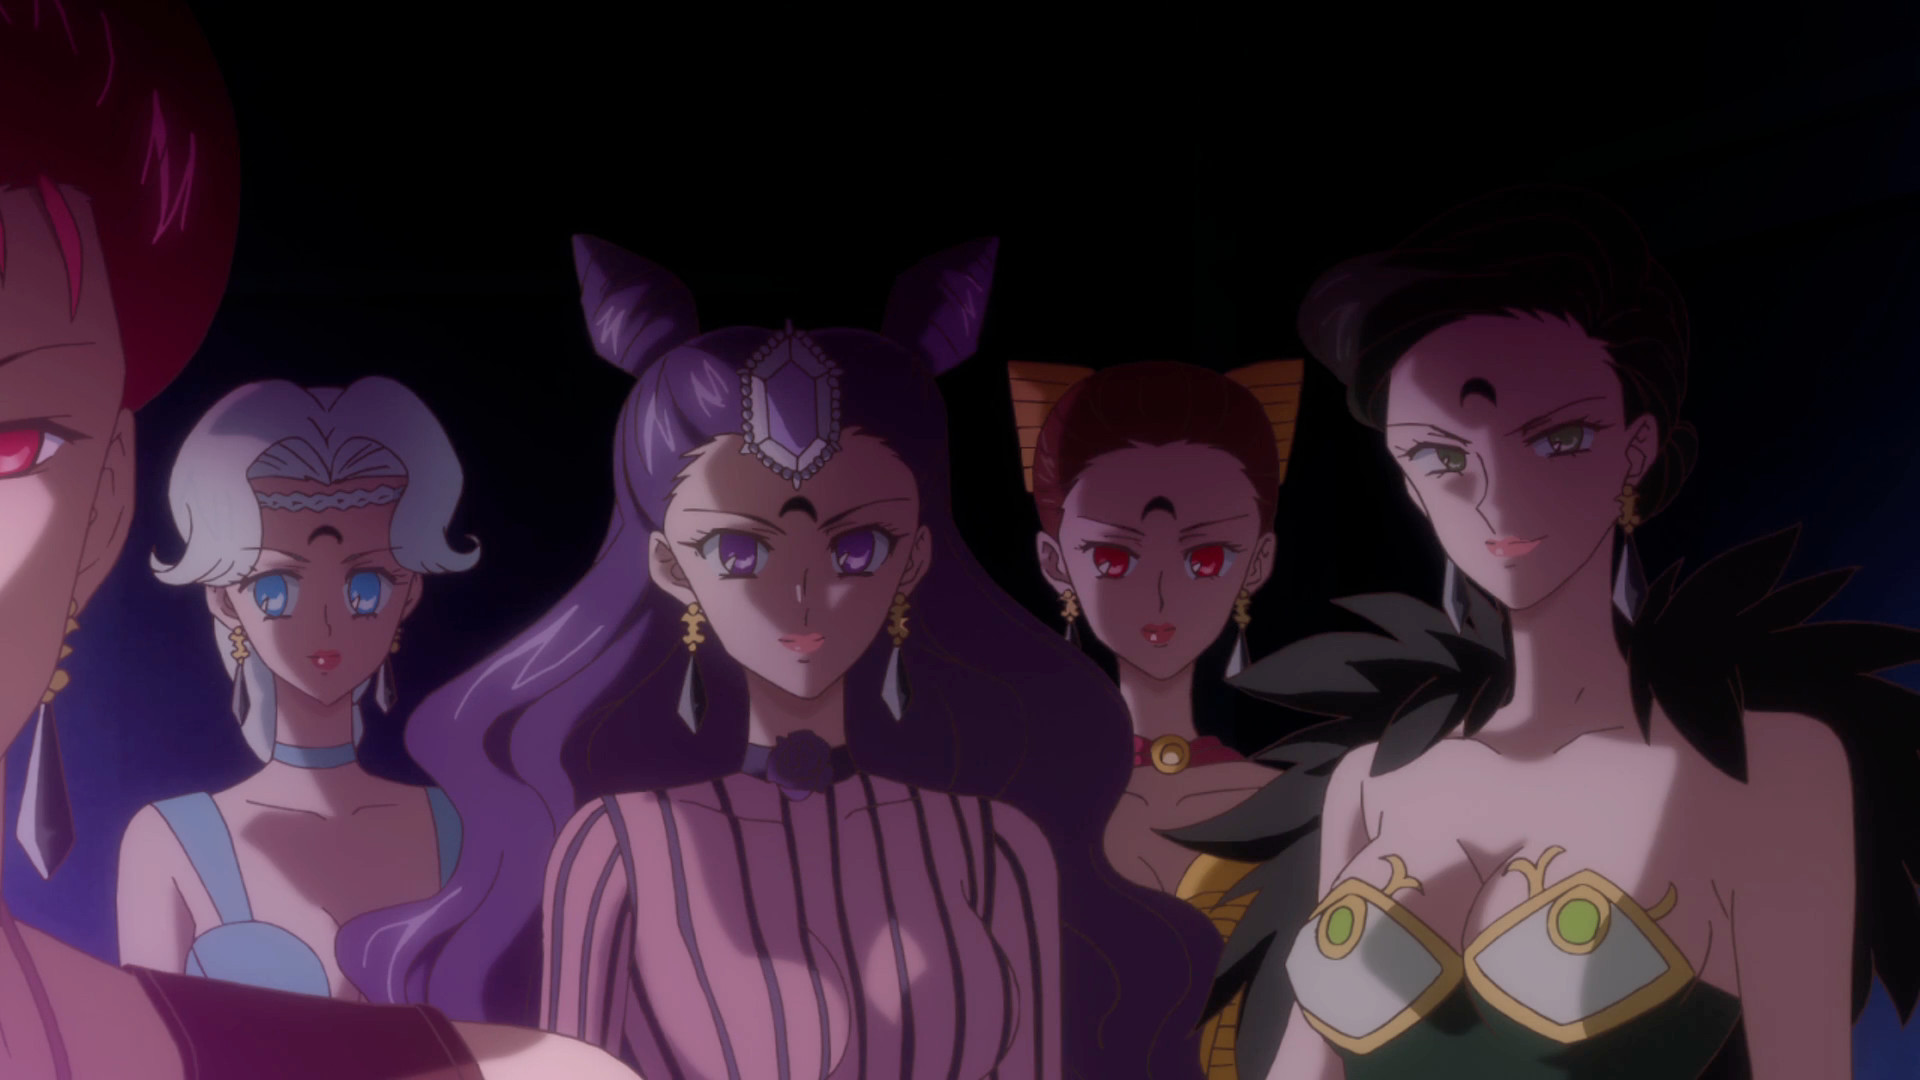 1920x1080 Image result for sailor moon crystal shitennou | sailor moon | Pinterest |  Sailor moon and Sailor moon crystal